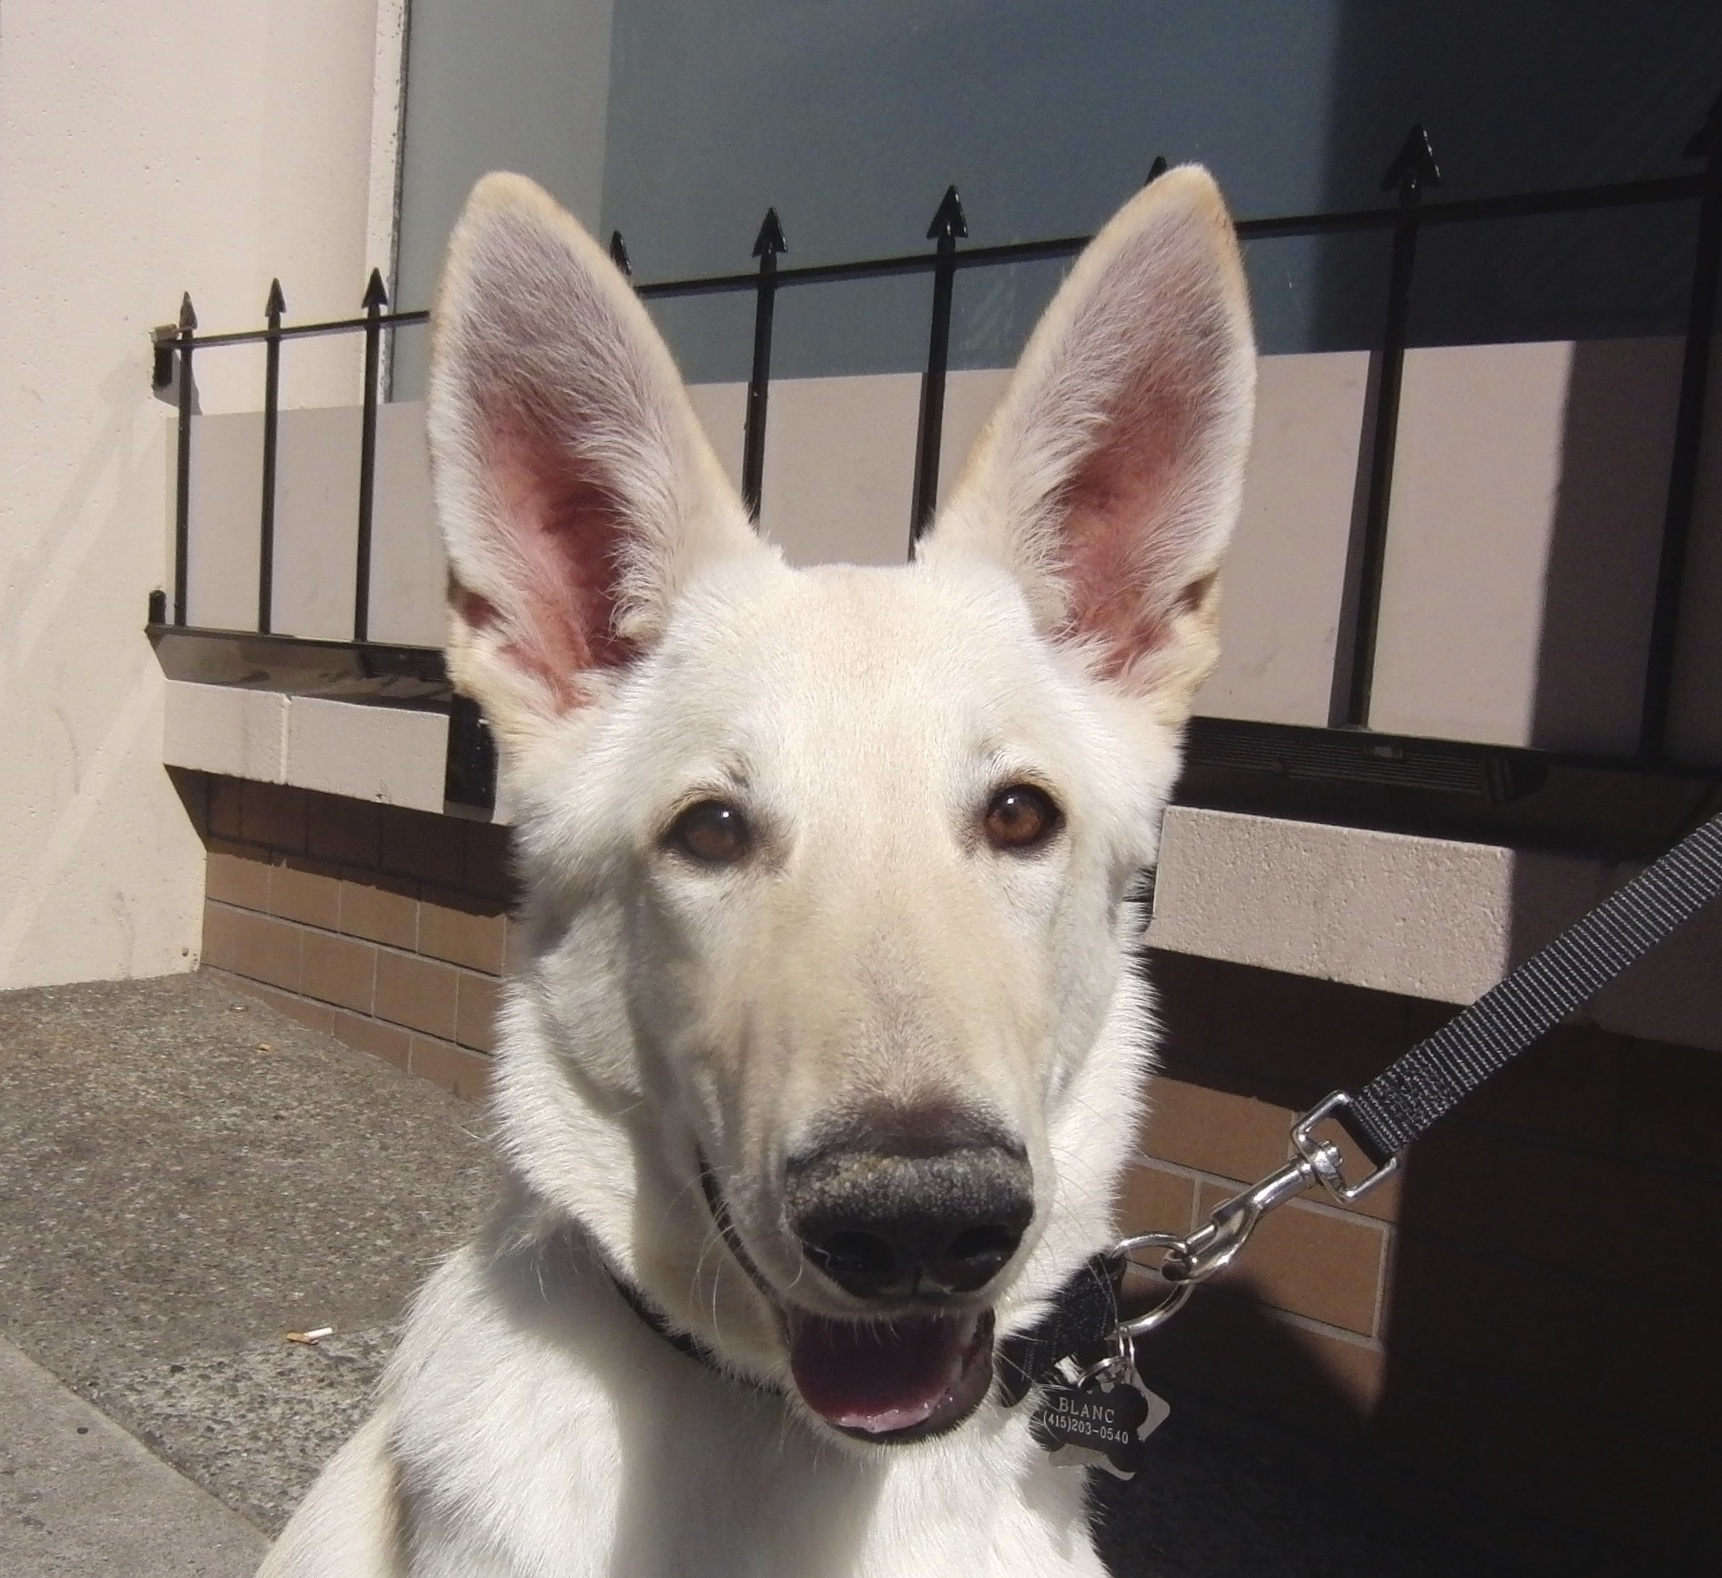 White Shepherd Dog, 5 Months Old